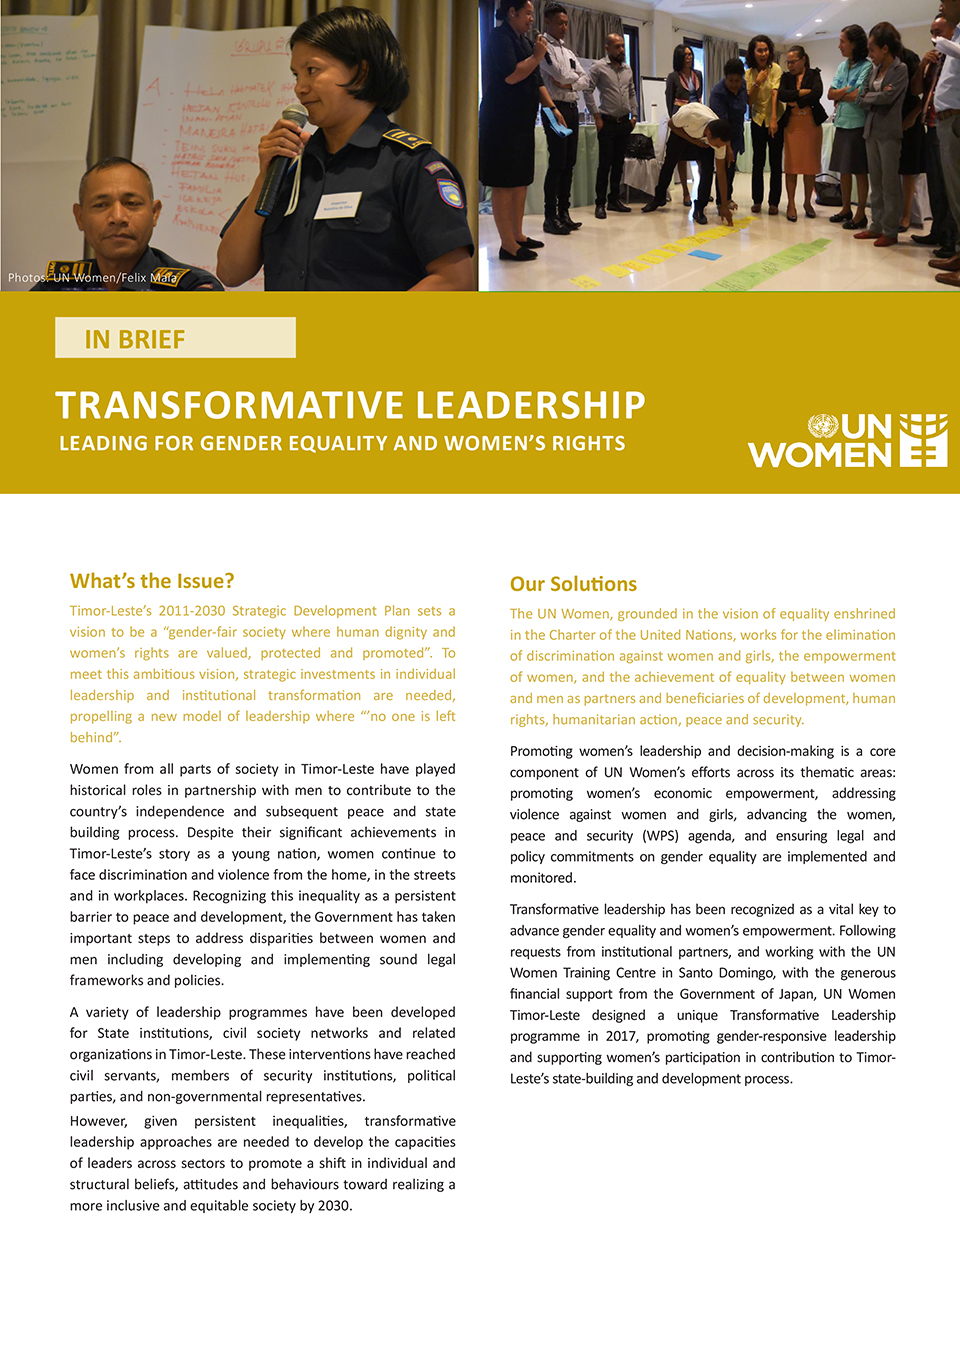 Transformative Leadership Leading for Gender Equality and Women's Rights